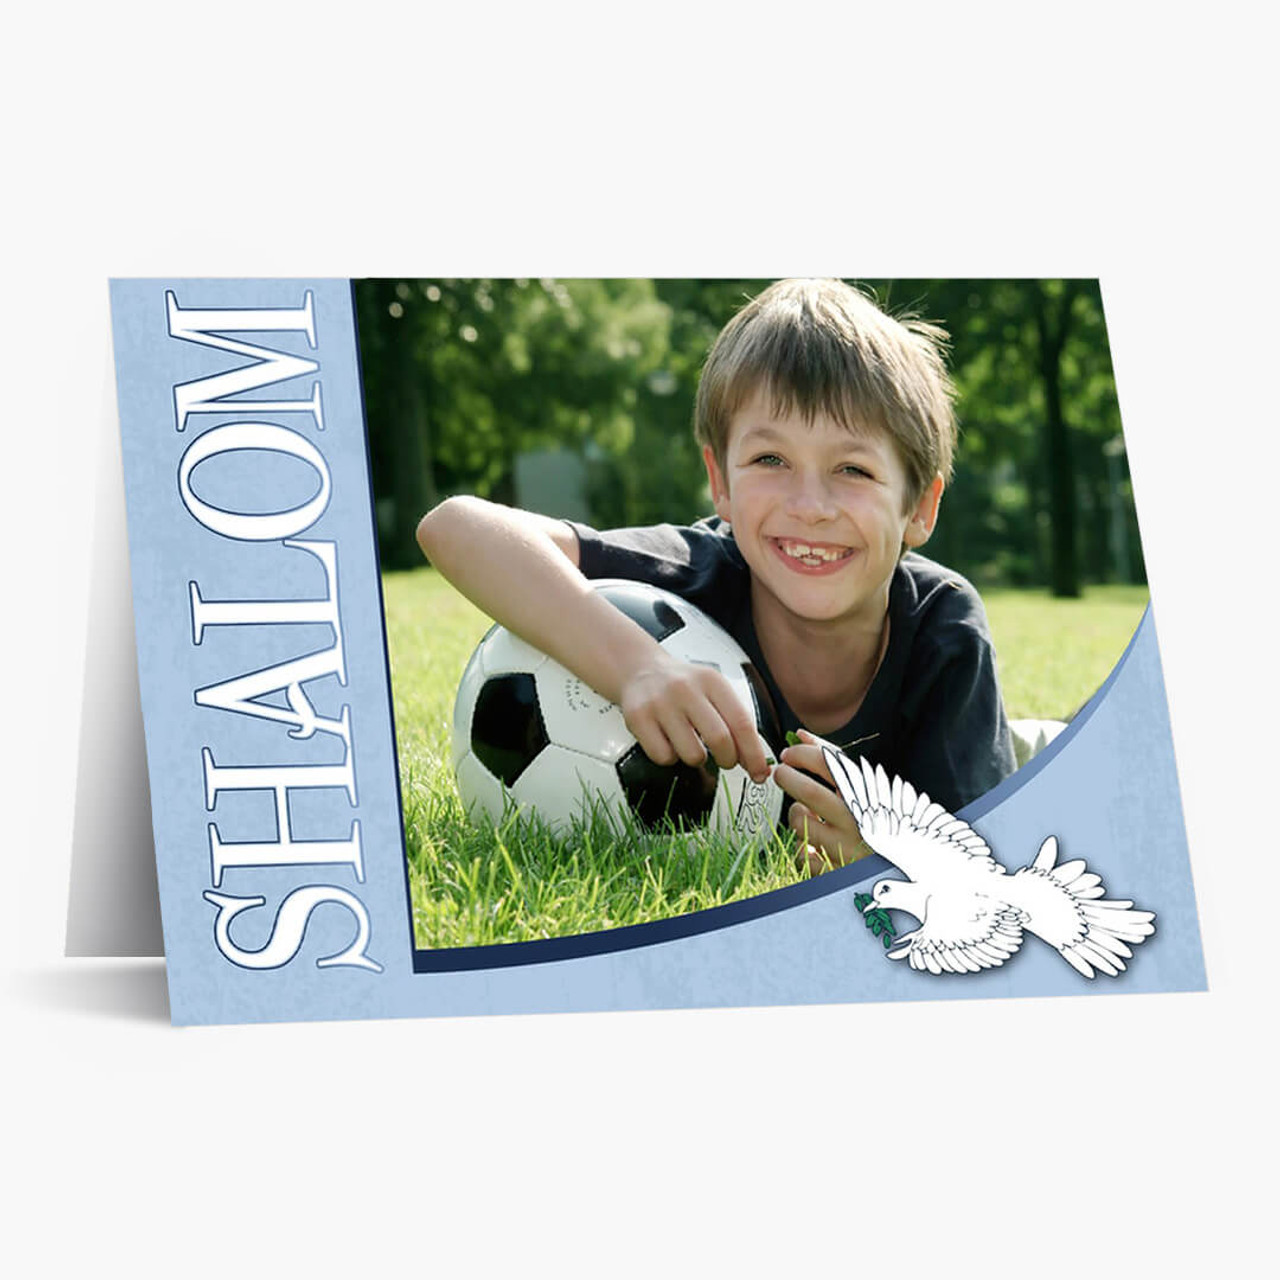 Shalom Photo - Matte Finish Rosh Hashanah Card